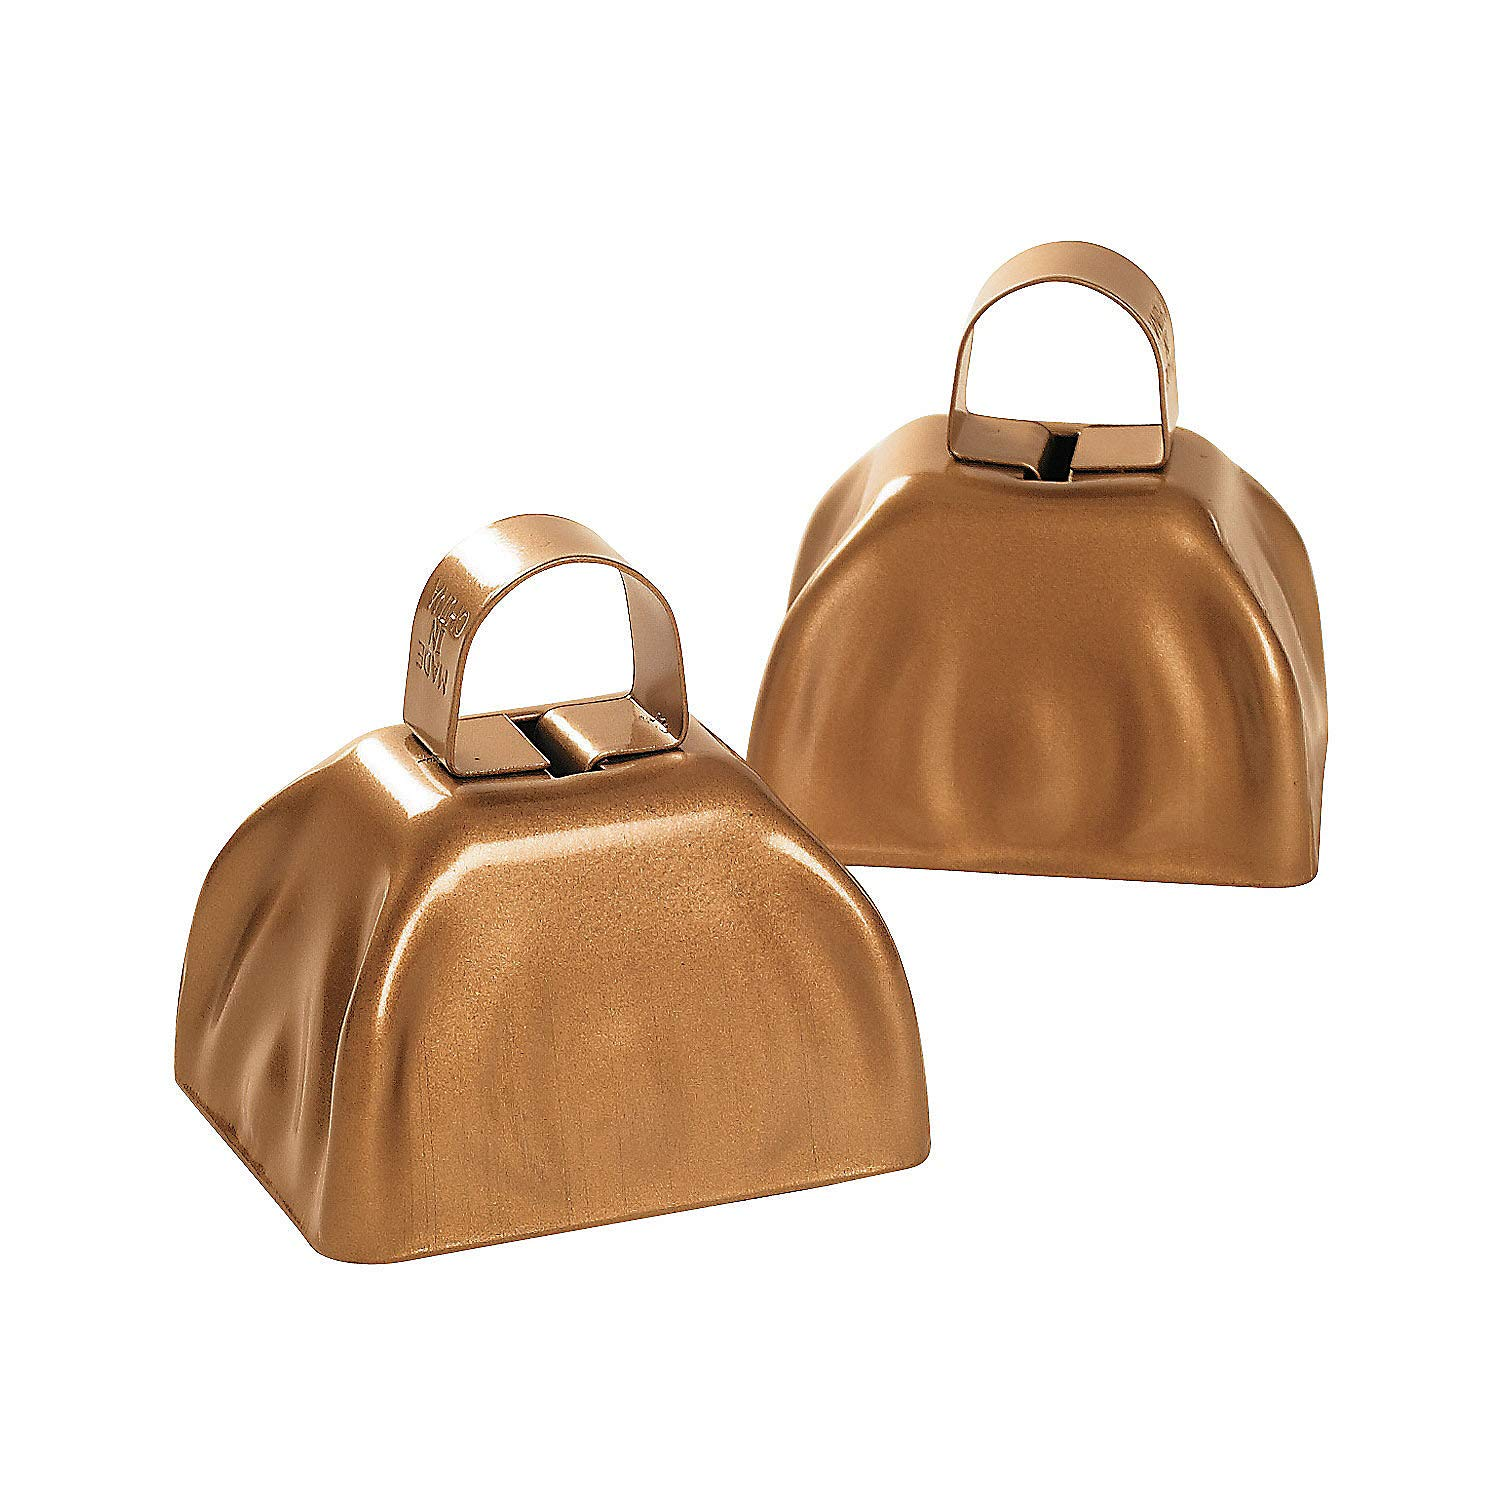 Fun Express - Metallic Gold Cowbells for Wedding - Toys - Noisemakers - Spirit Noisemakers - Wedding - 12 Pieces by Fun Express